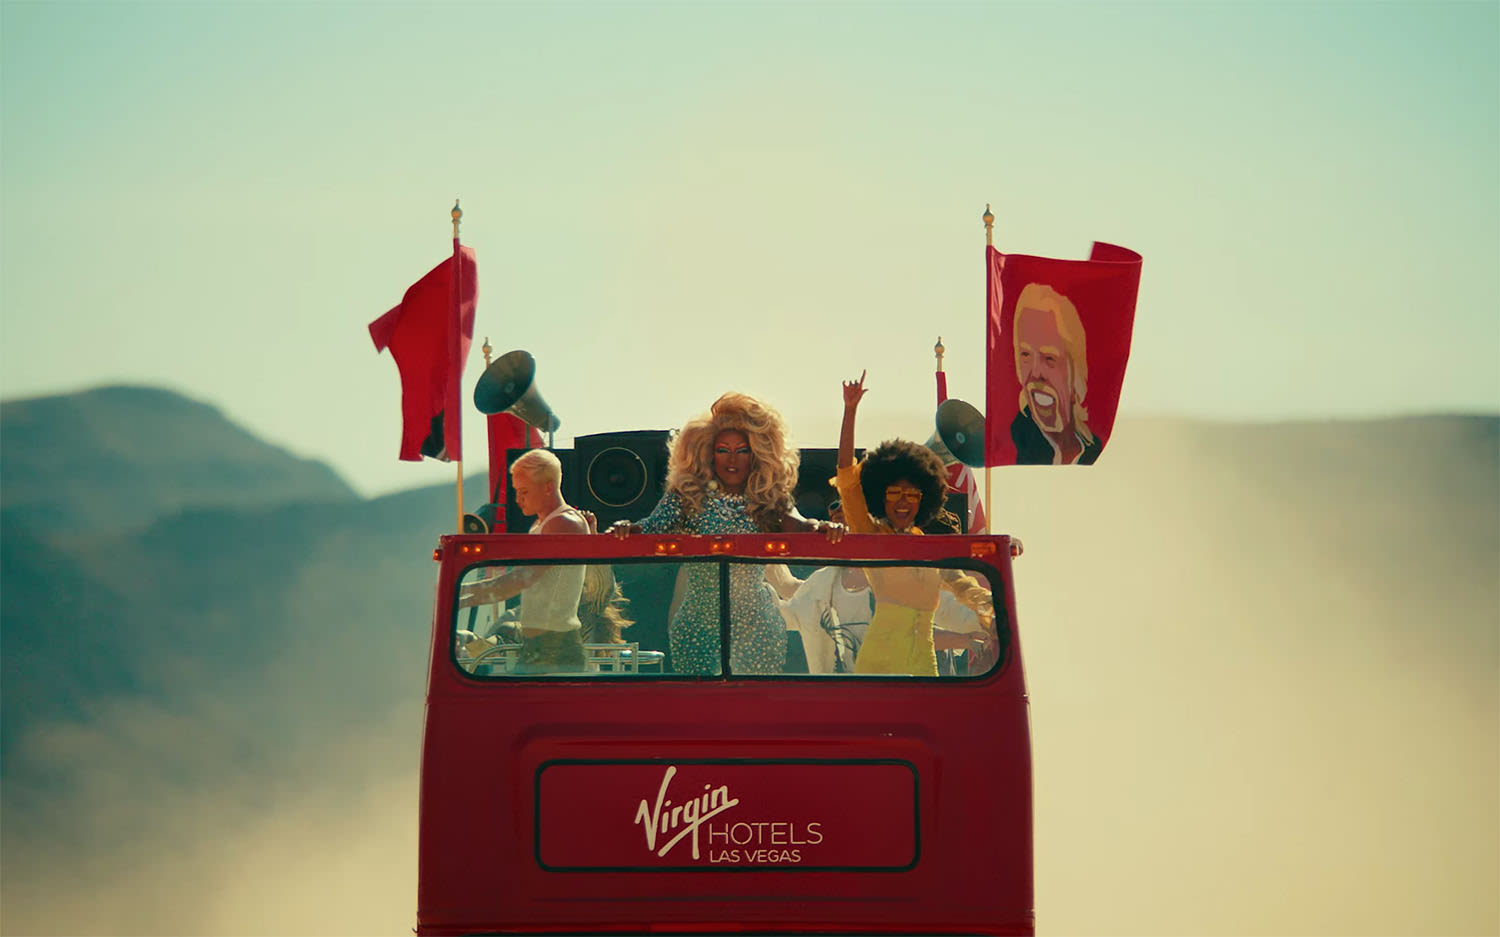 An open top red bus driving through the Las Vegas desert with people partying on the top deck and flags with Richard Branson's face on. The destination on the bus reads: Virgin Hotels Las Vegas